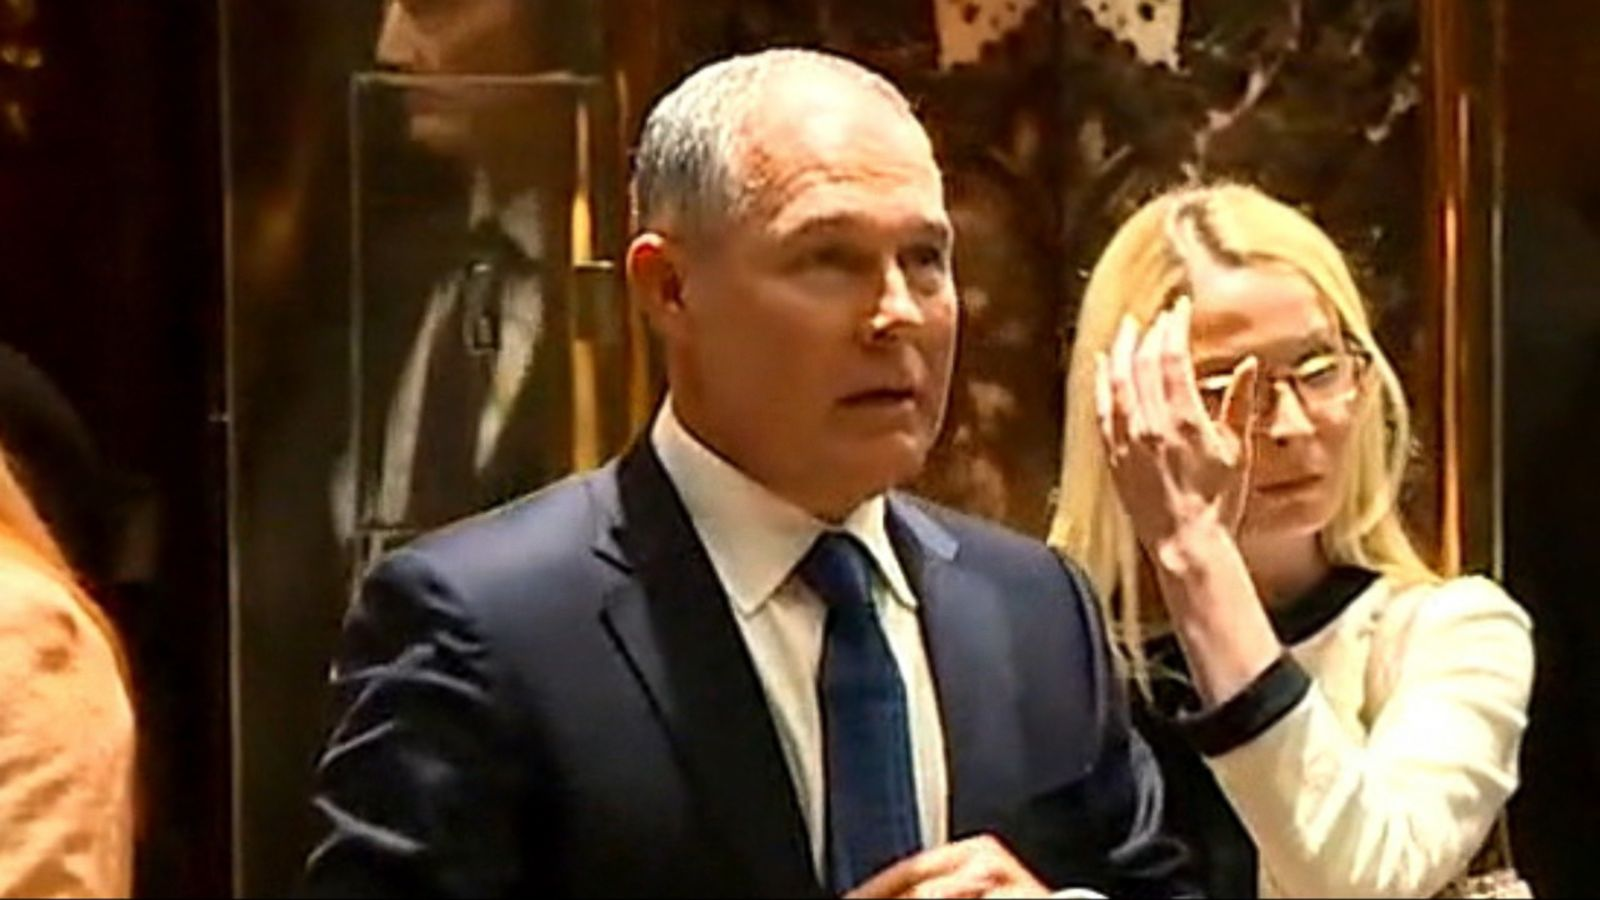 VIDEO: President-elect Donald Trump has selected Oklahoma Attorney General and Environmental Protection Agency critic Scott Pruitt as his pick to run the EPA, according to Trump senior adviser Kellyanne Conway.